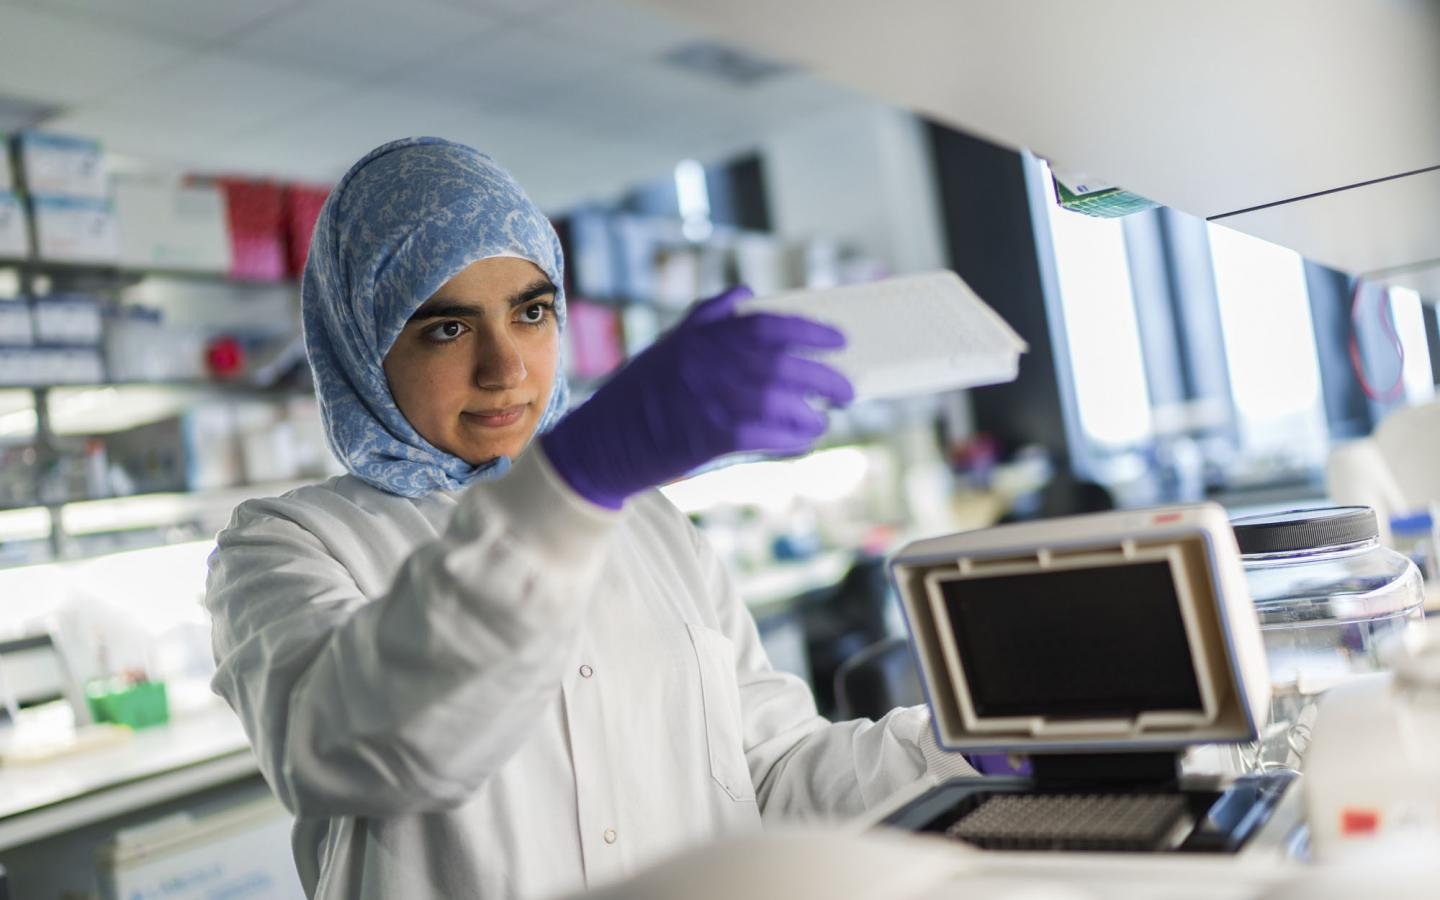 A female ovarian cancer researcher wearing a headscarf, purple gloves and a lab coat using equipment